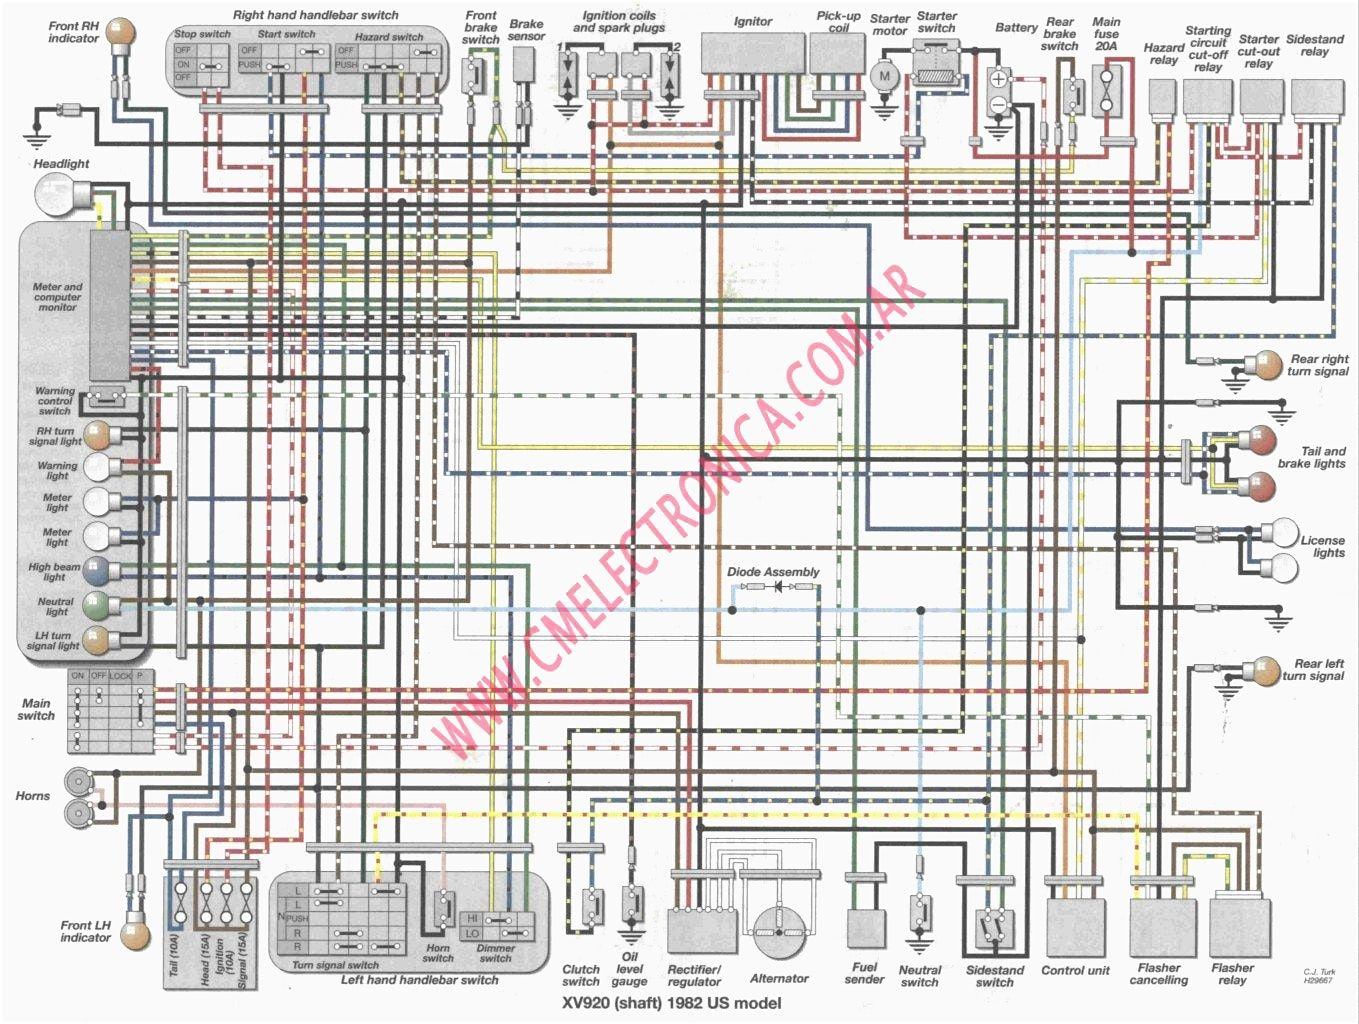 Yamaha Virago 920 Wiring Diagram Wiring Diagram Schematics Yamaha Fz6r Wiring  Diagram Yamaha Virago 920 Ignition Wiring Diagram